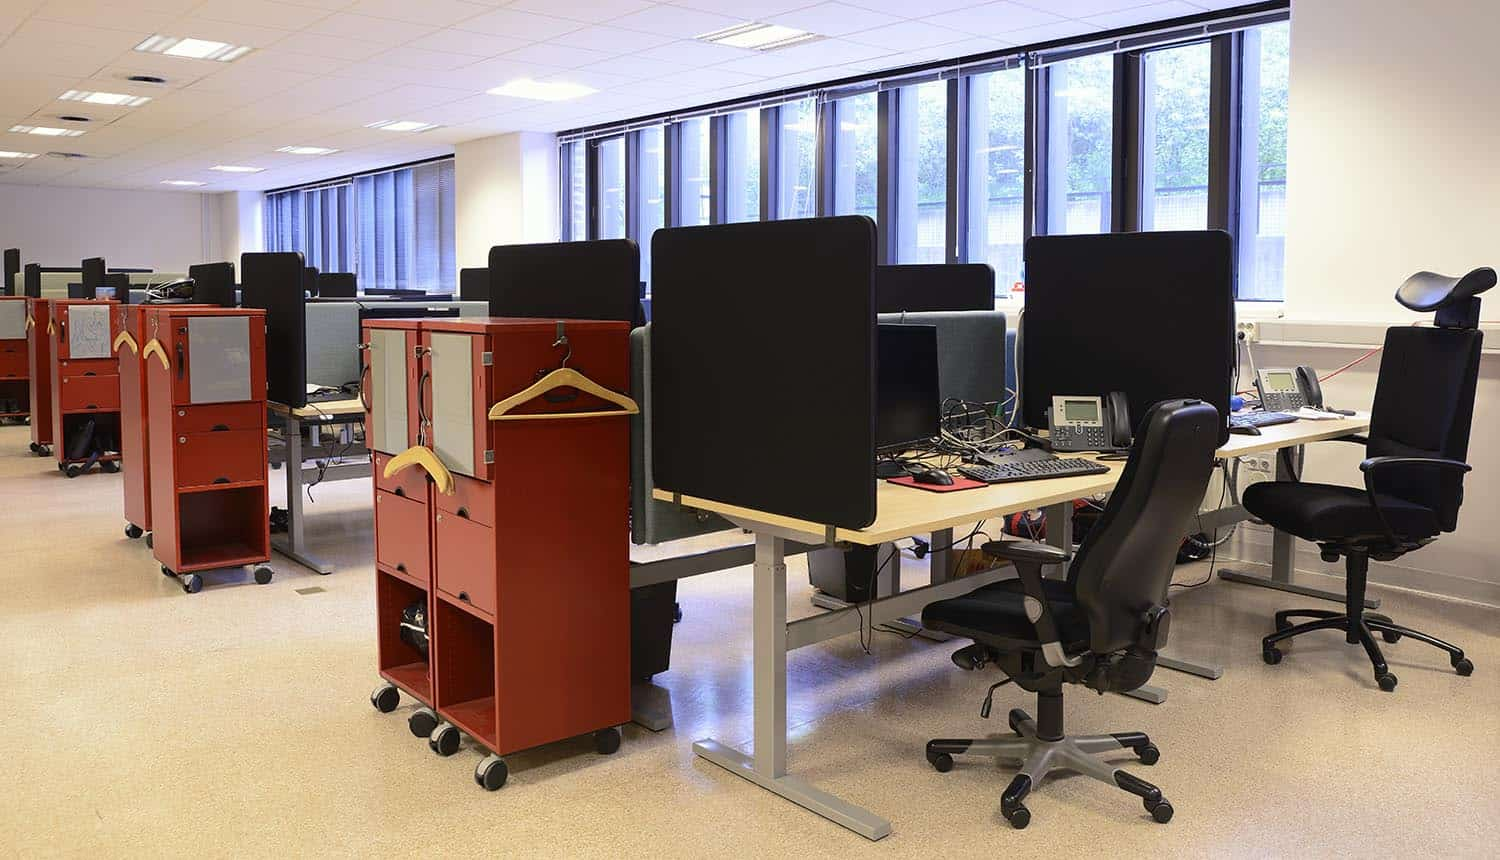 Empty office, chairs and tables in a row show gap in cybersecurity workforce